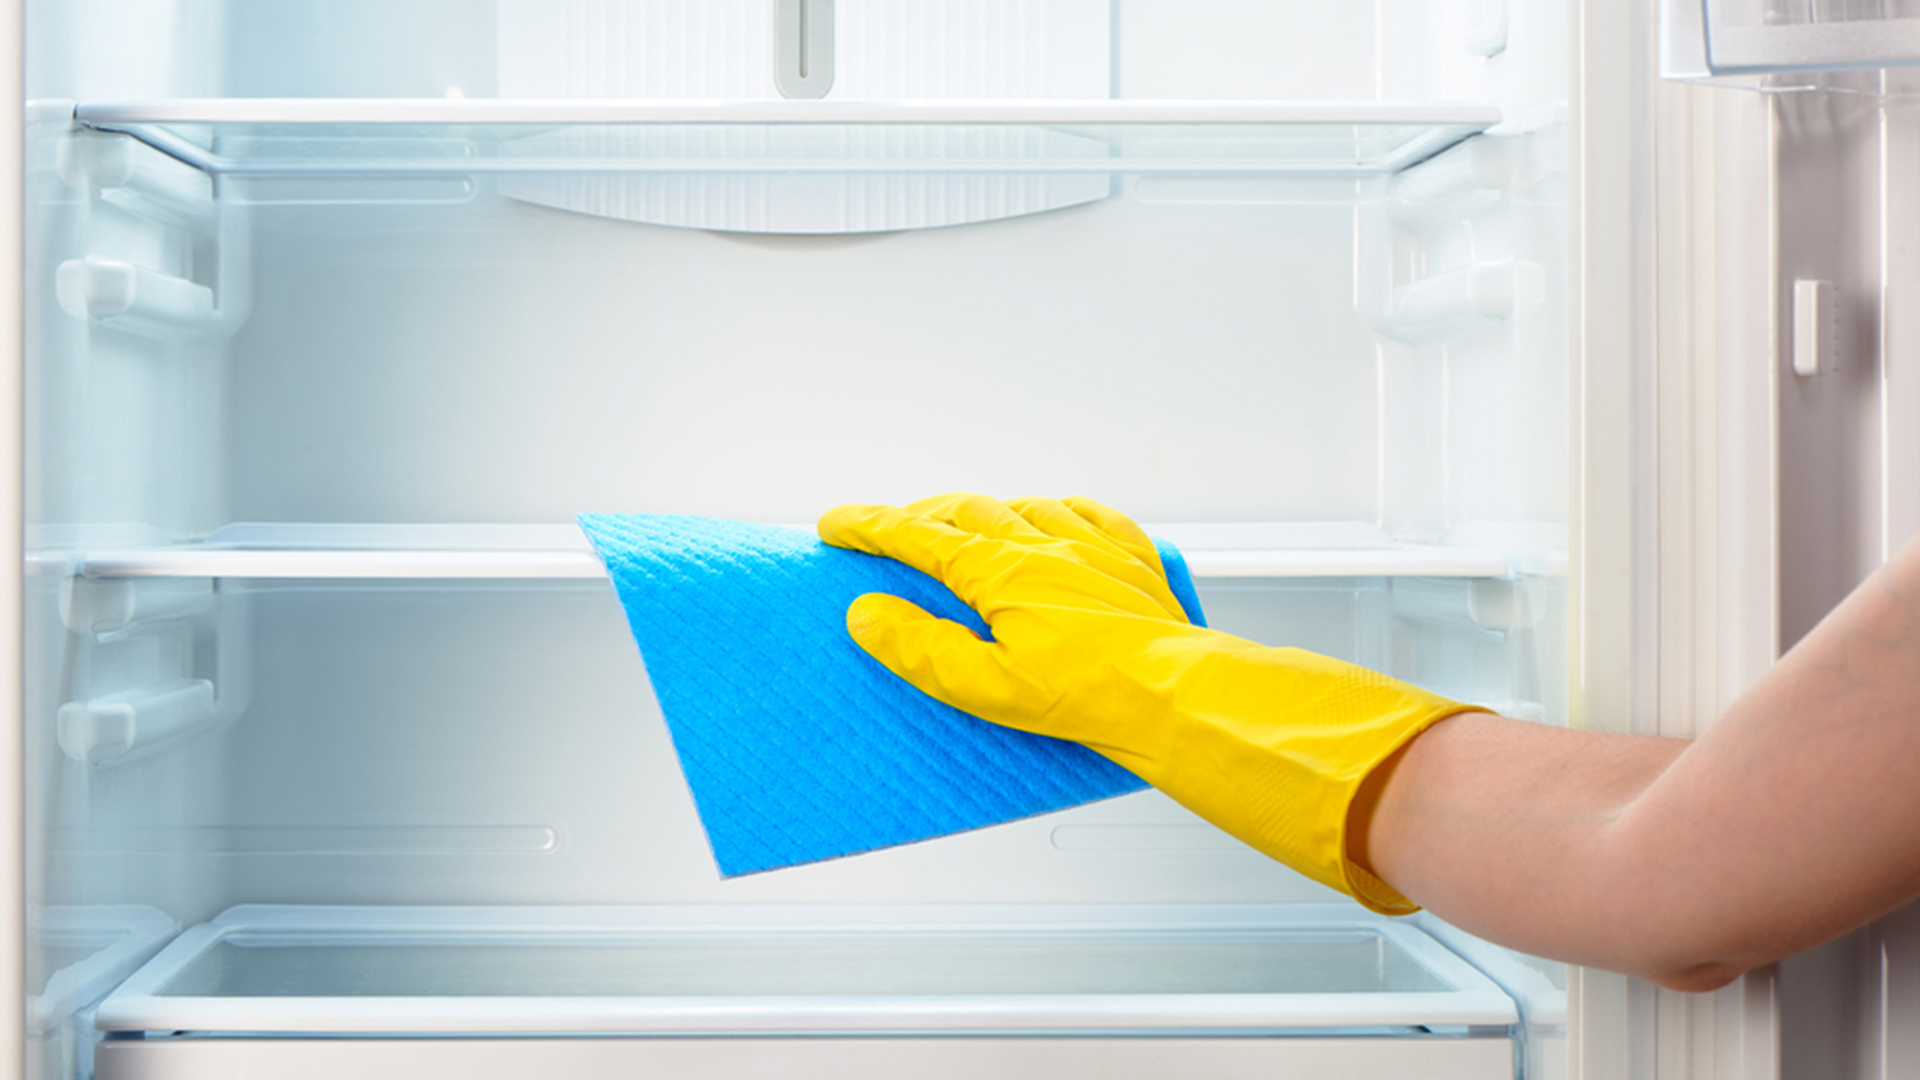 Refrigerator Cleaning Maintenance